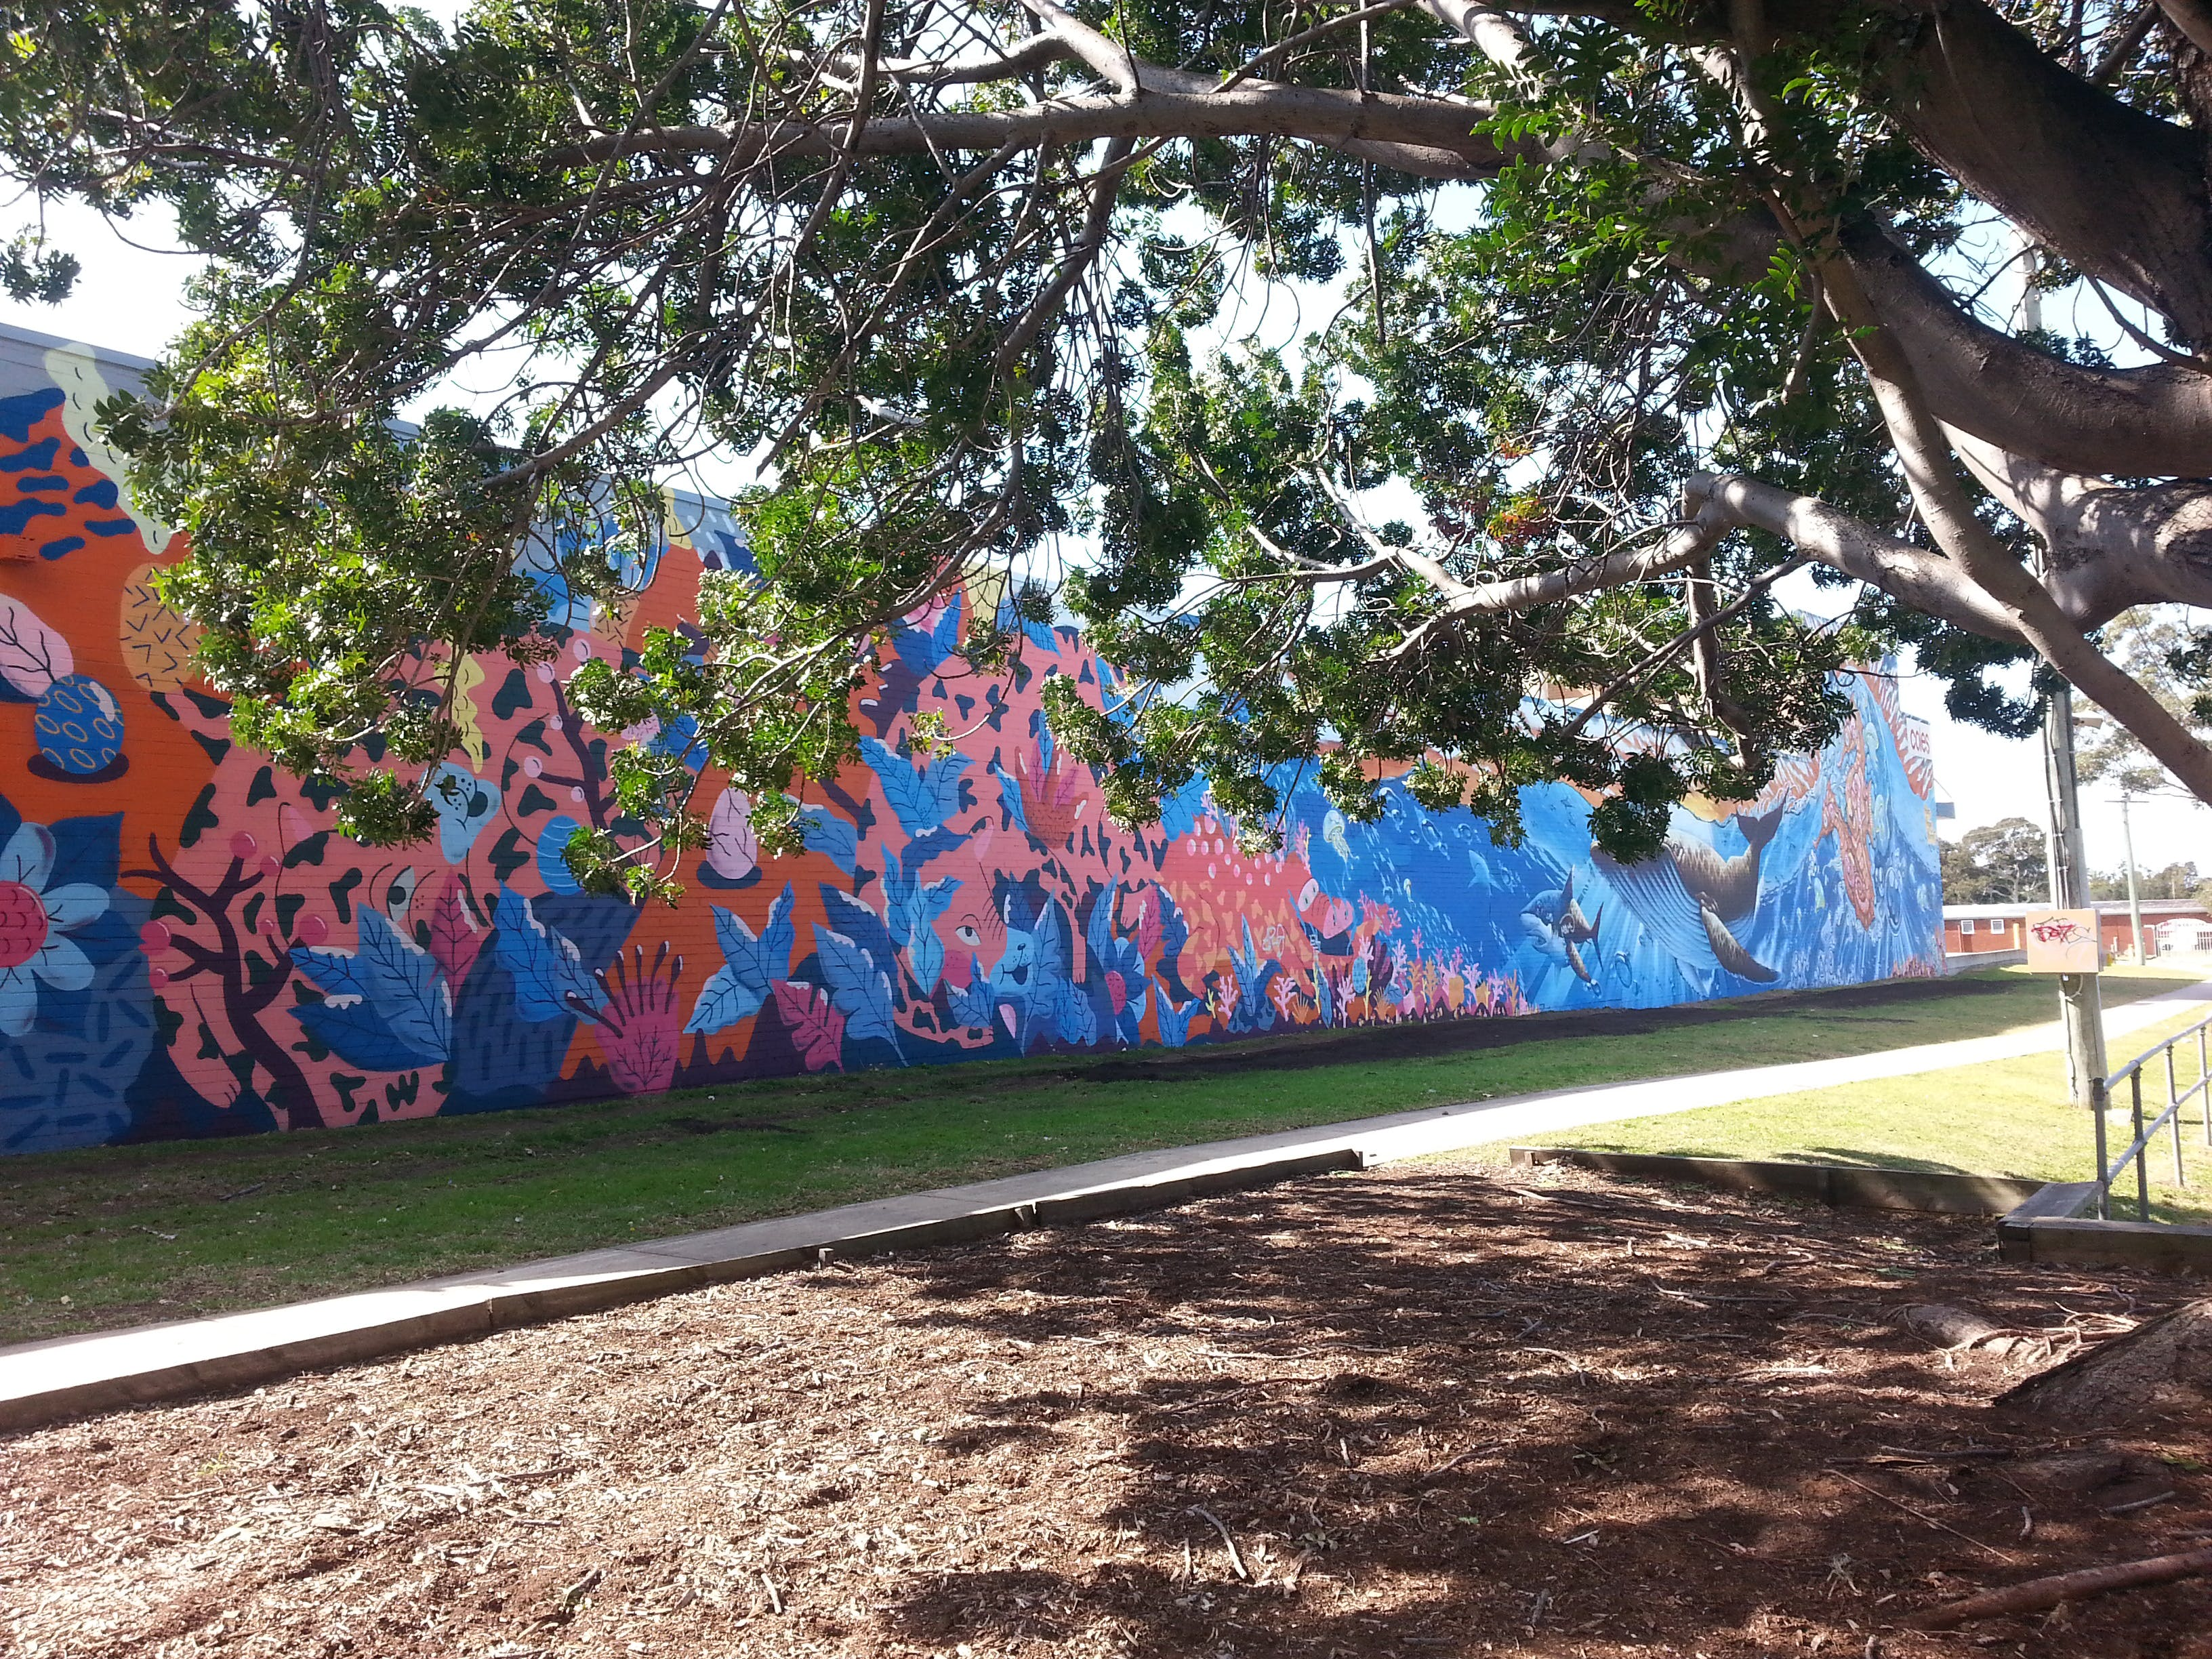 Mural peeking through the trees